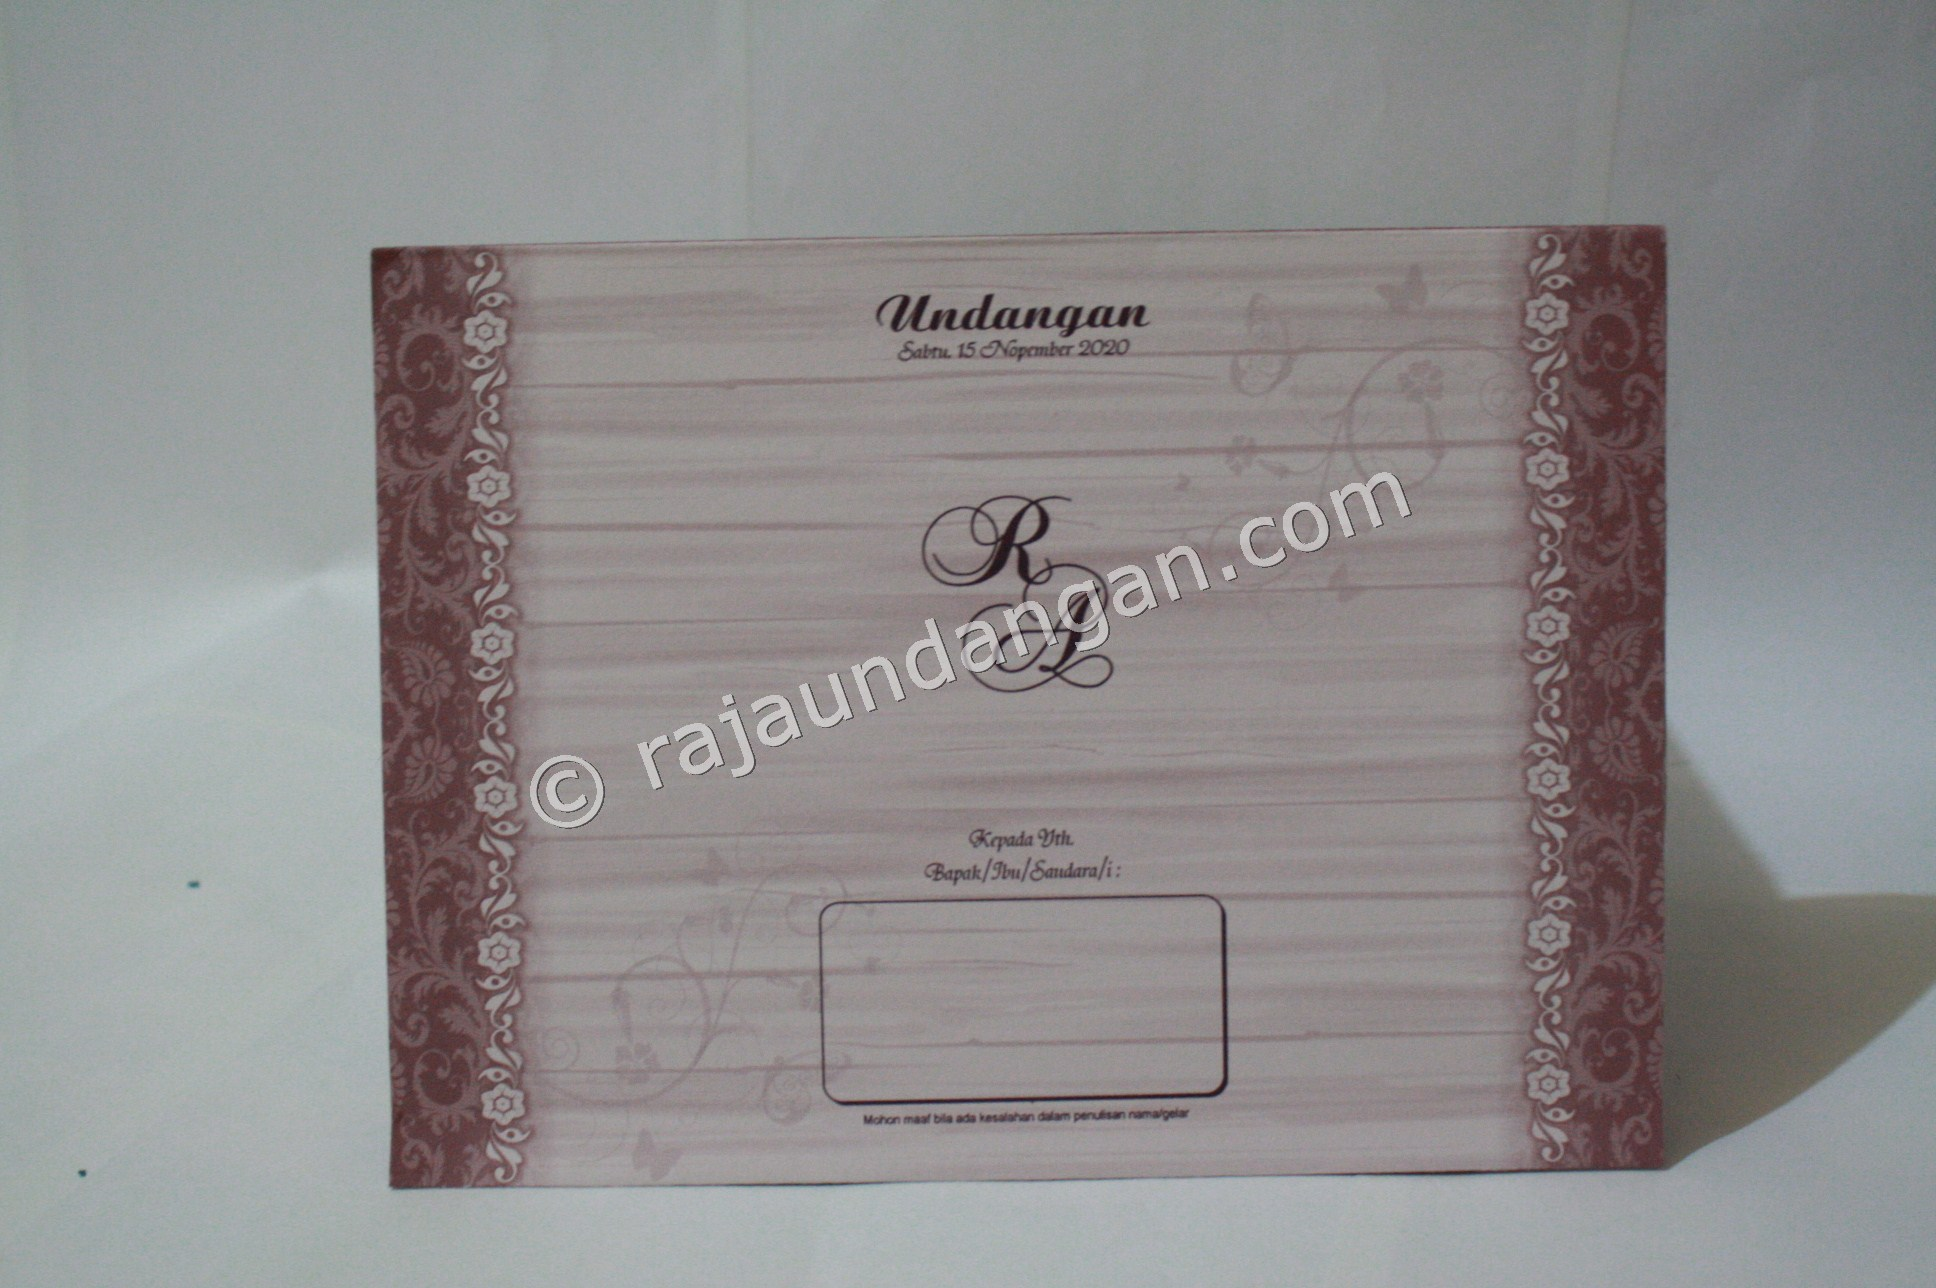 Undangan Pernikahan Softcover Yusuf dan Rani 1 - Percetakan Wedding Invitations Simple dan Elegan di Putat Jaya